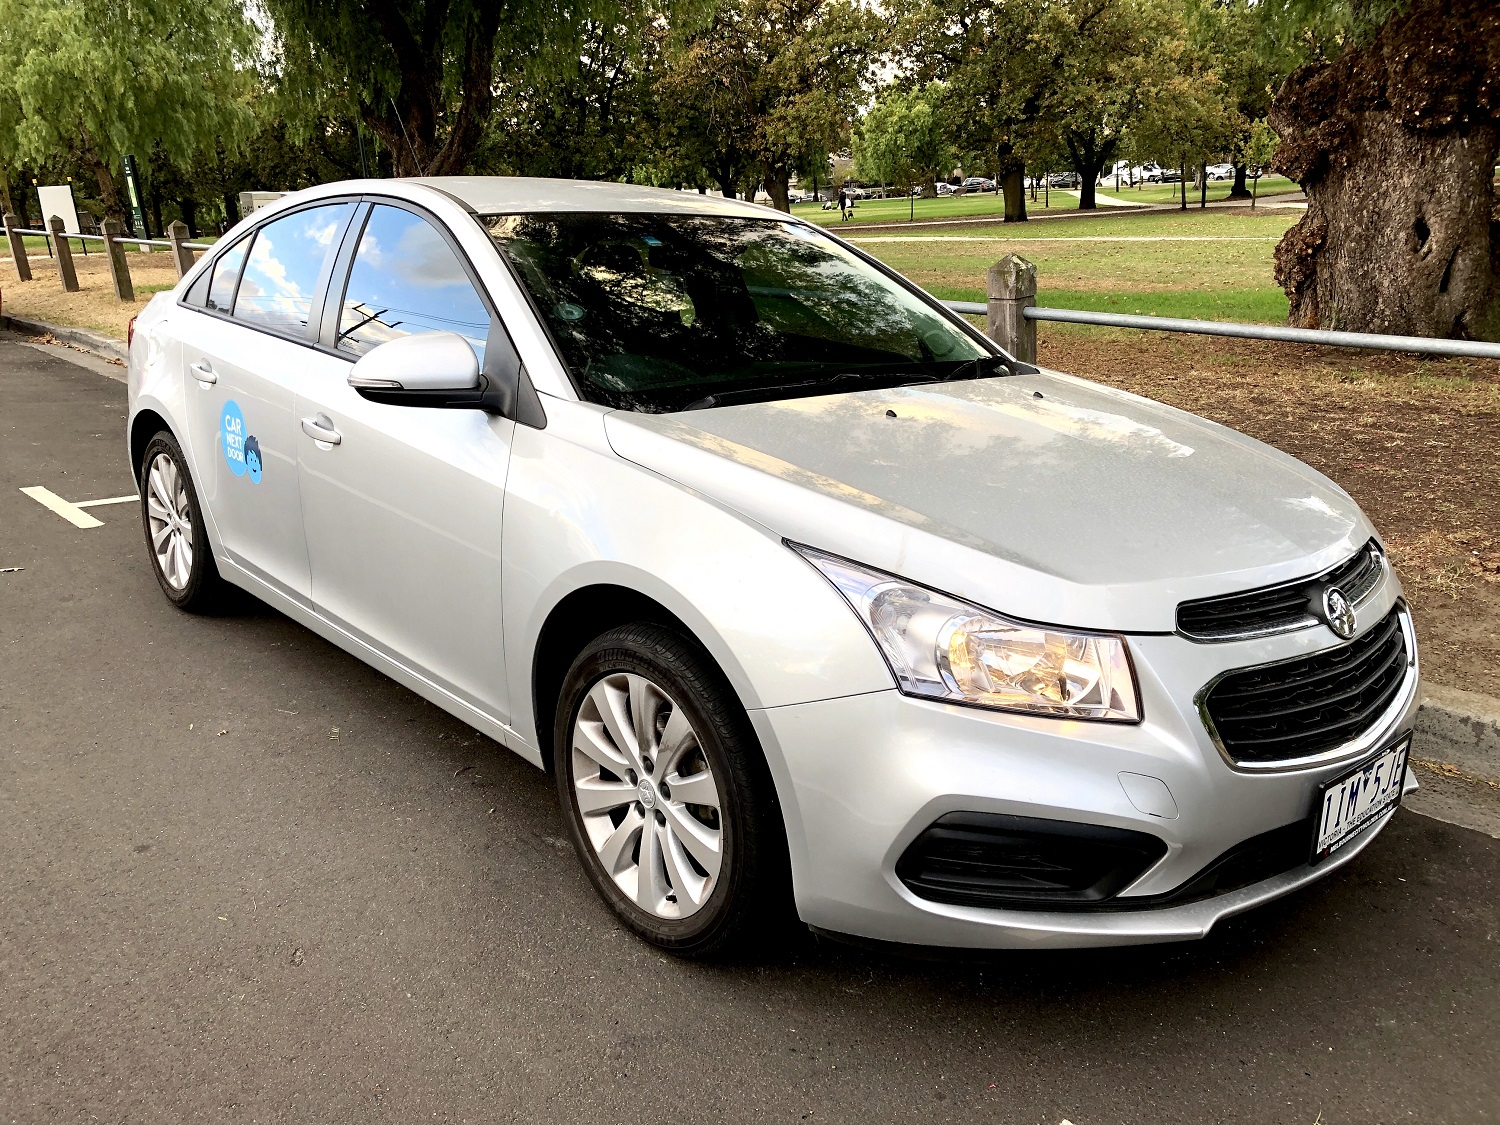 Picture of Kanitha's 2016 Holden Cruze